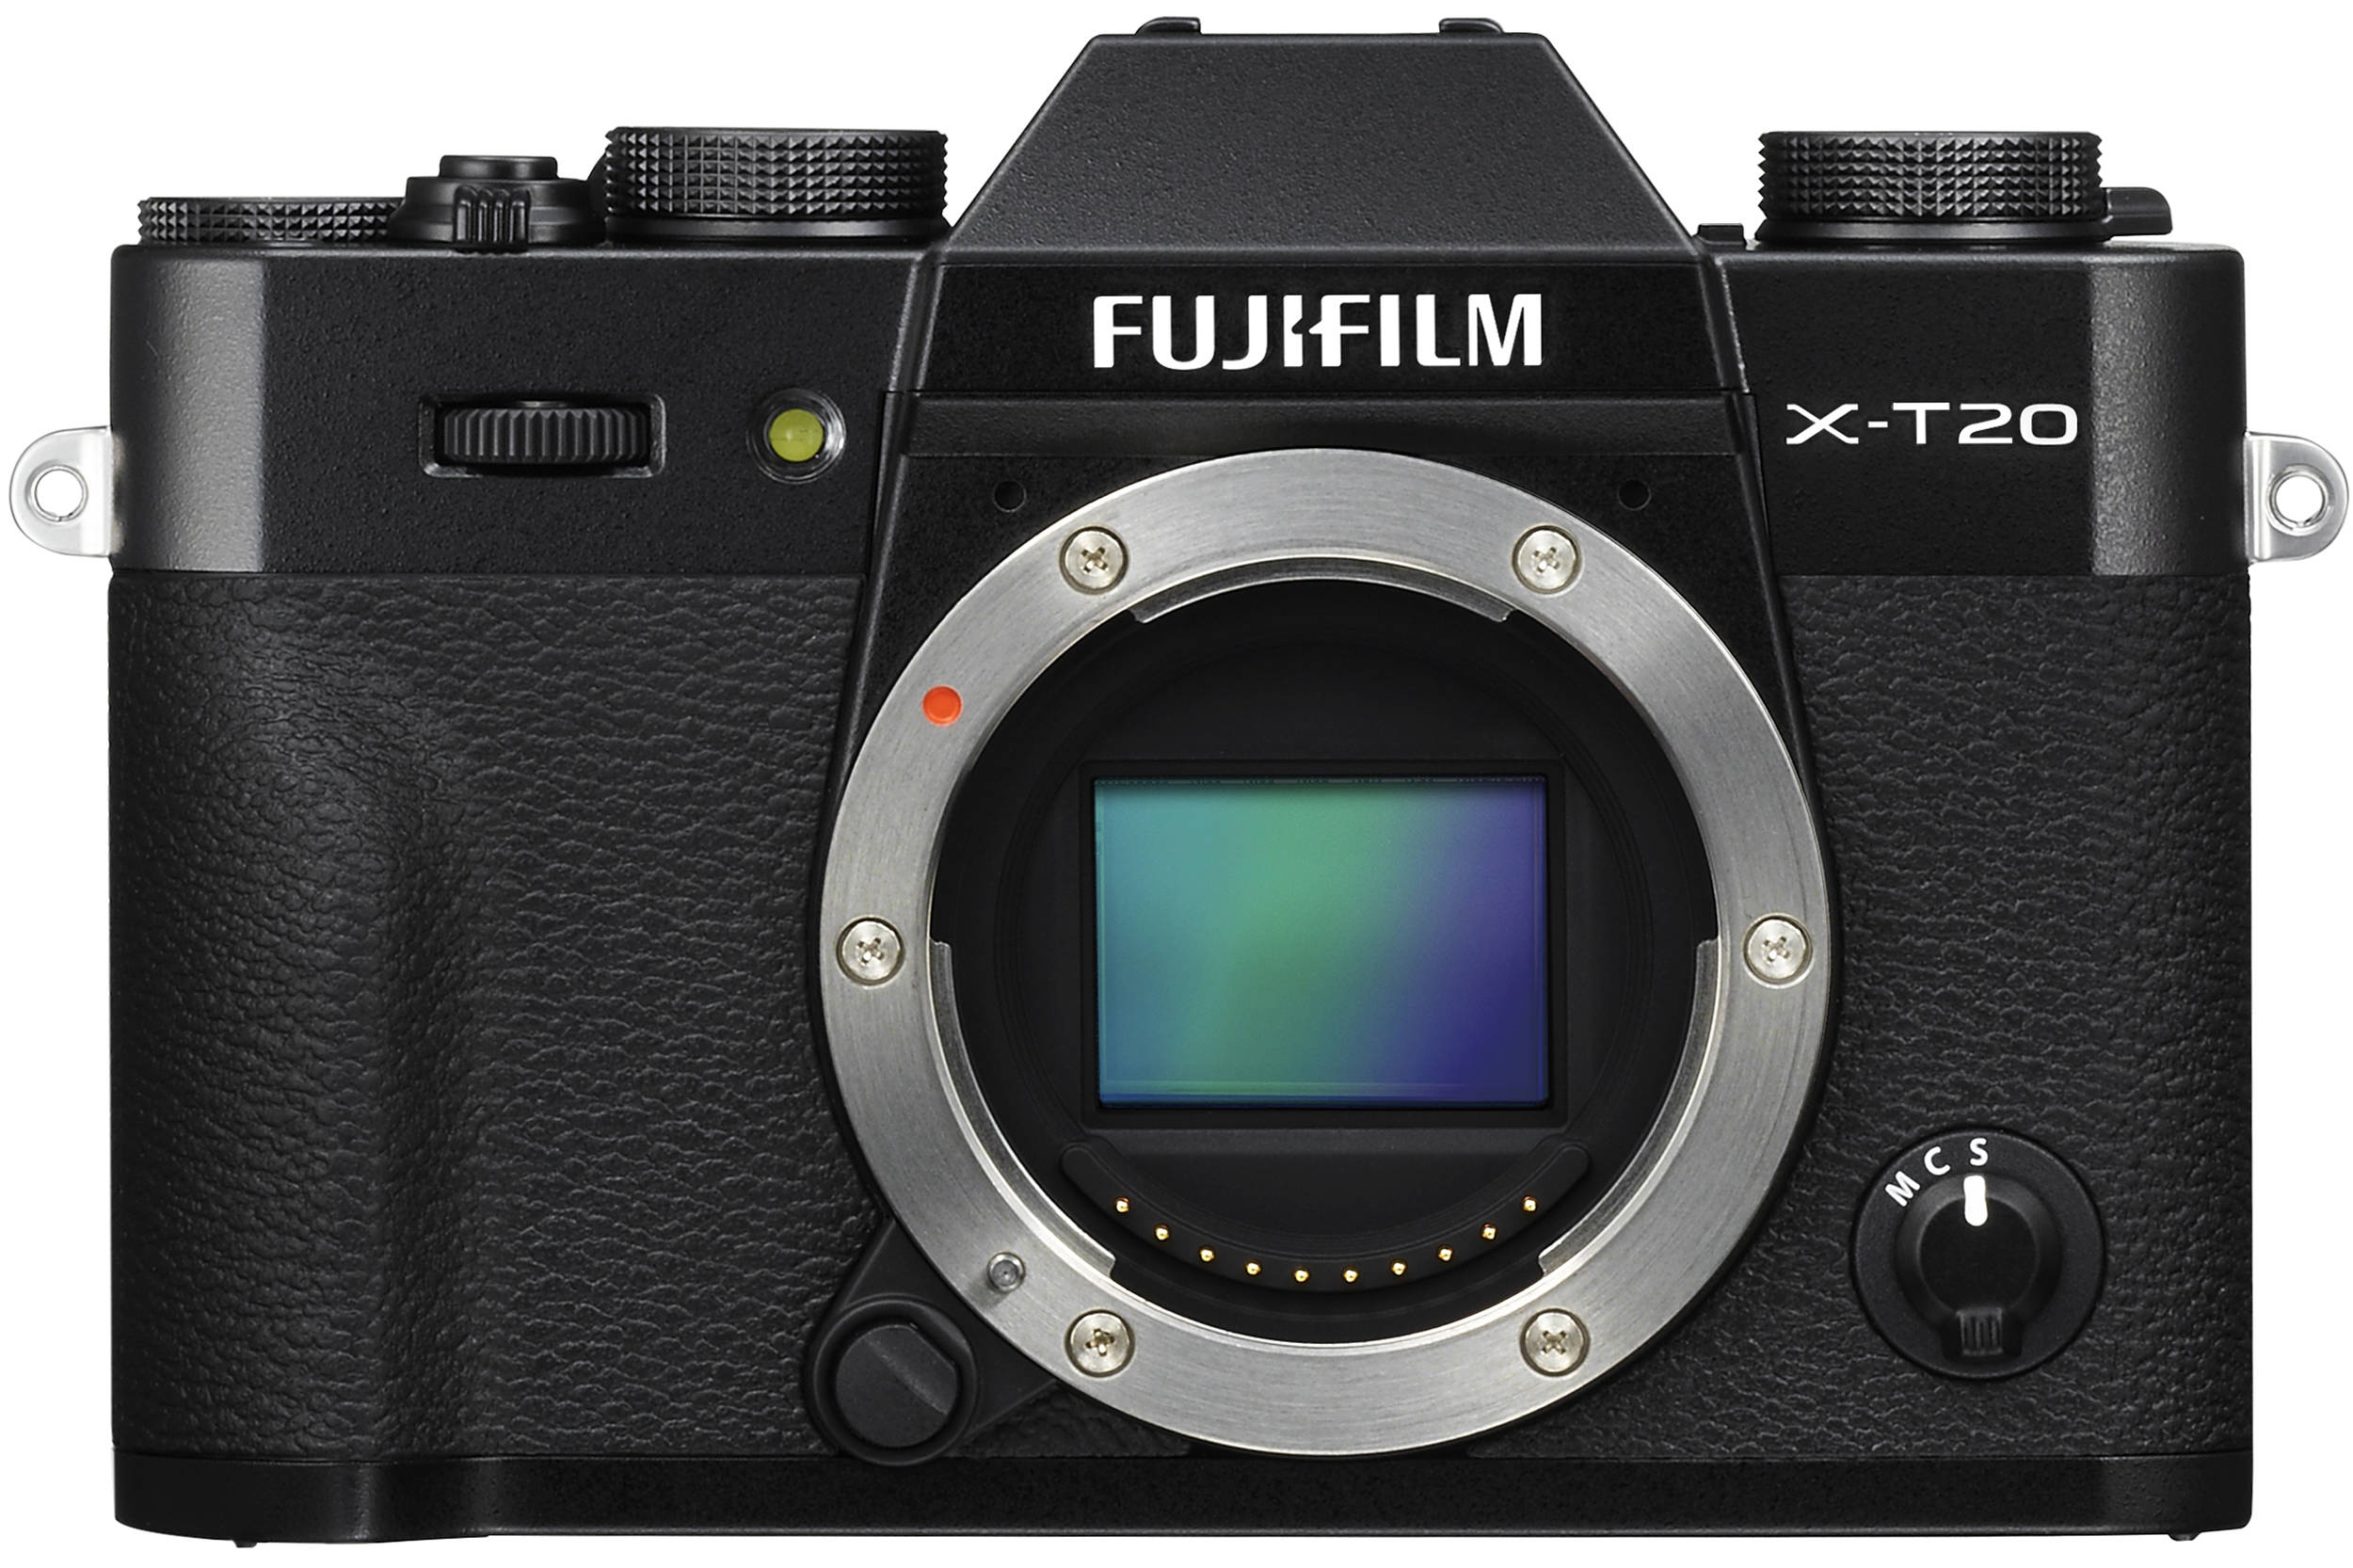 The Fujifilm X-T20 is an amazingly capable compact CSC